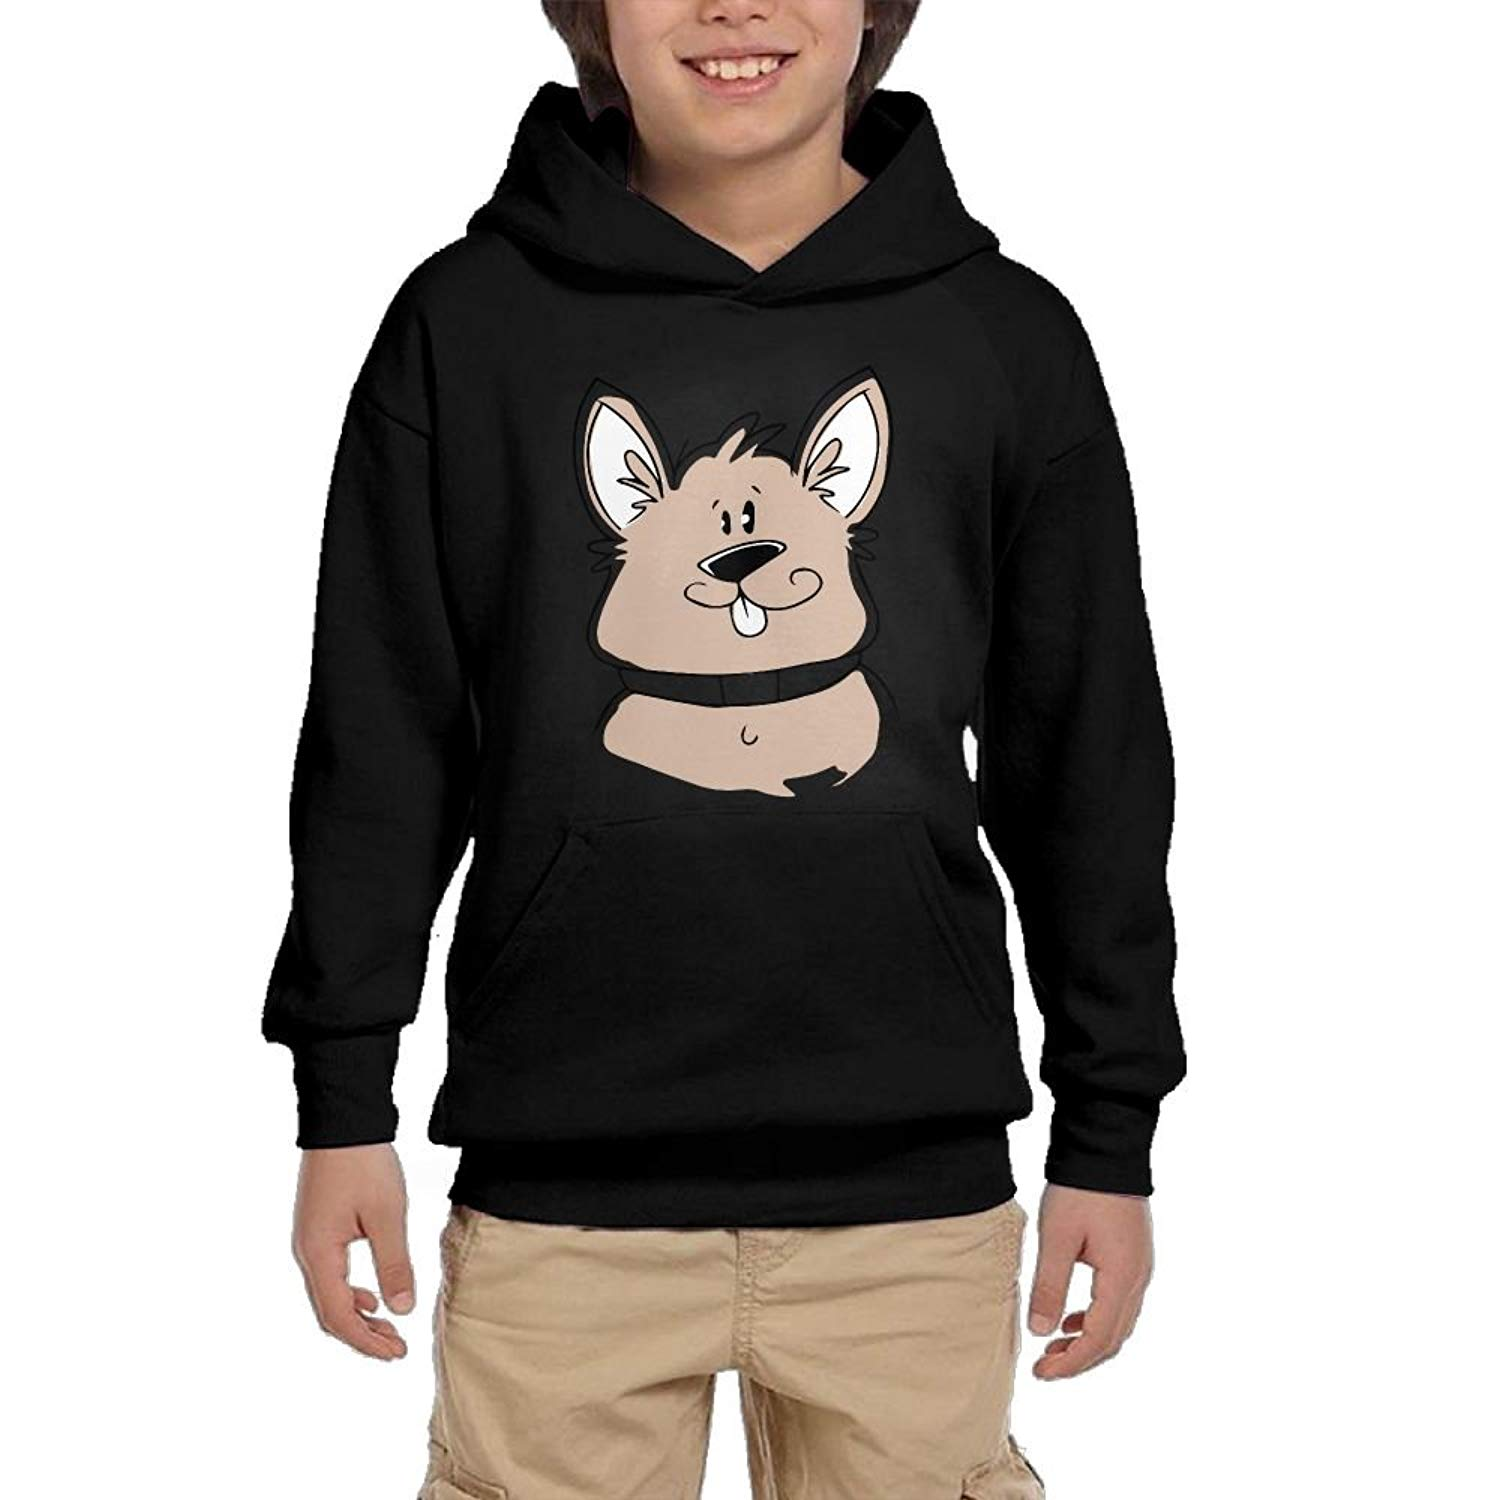 HUH HOODIES Rats 1 Youth Athletic Pullover Hoodies Casual Sweatshirts With Pocket